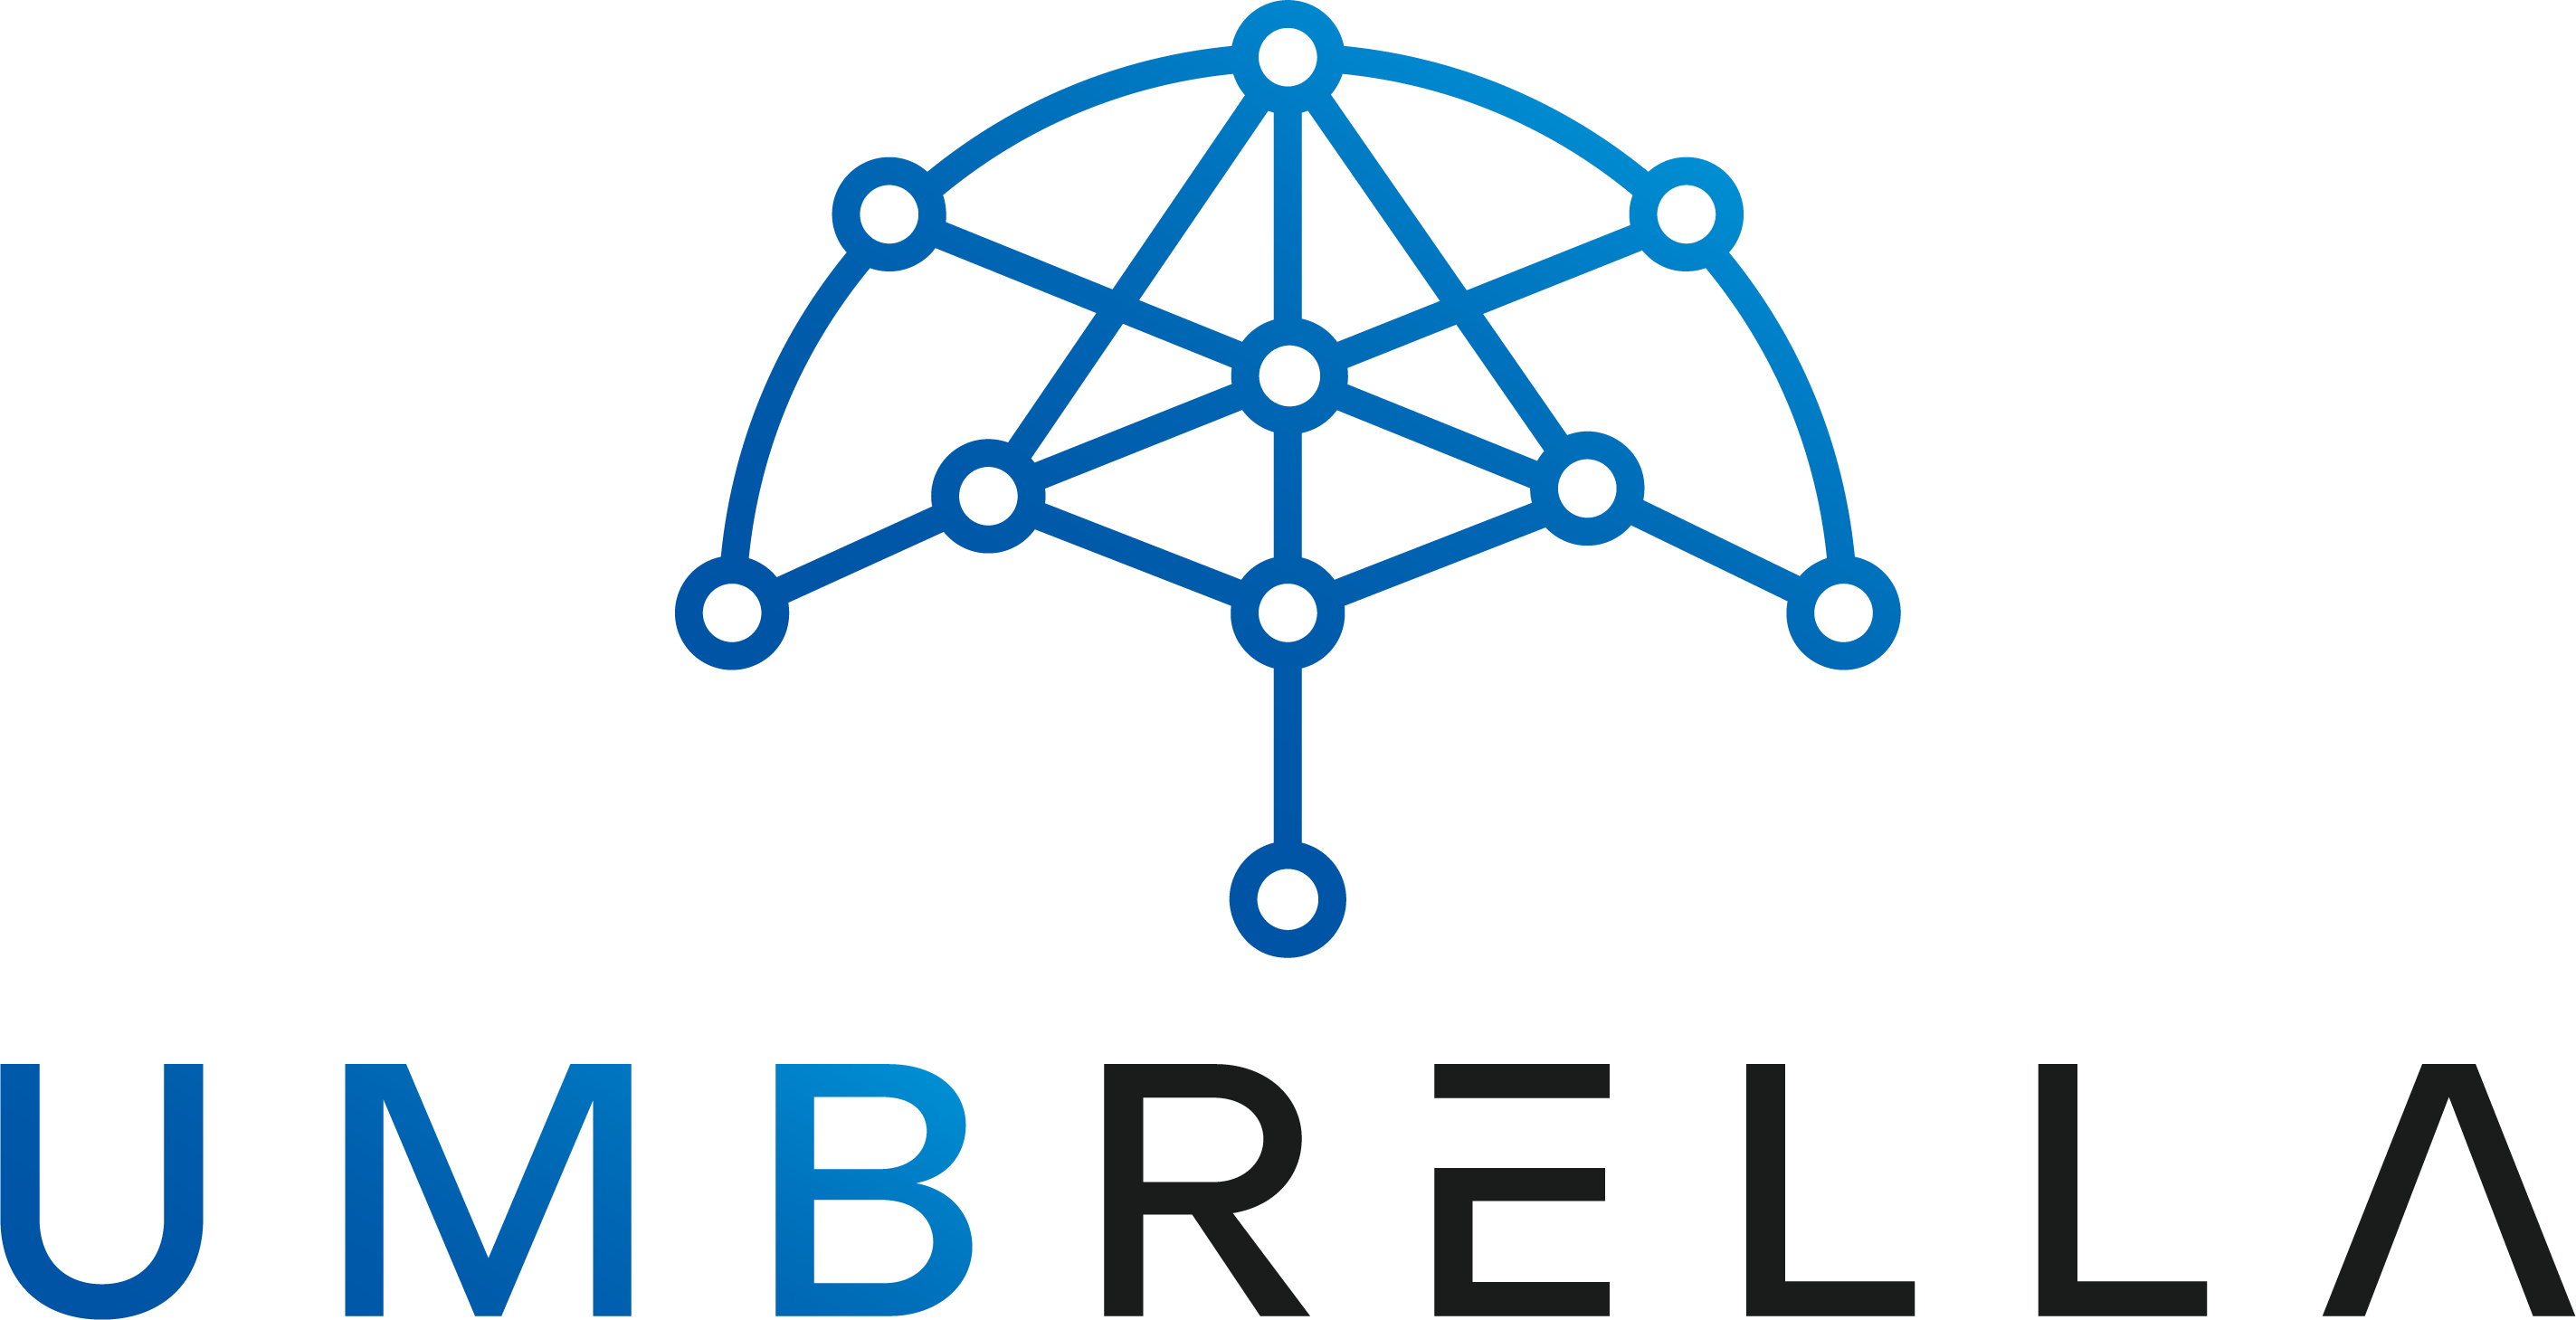 Umbrella Network